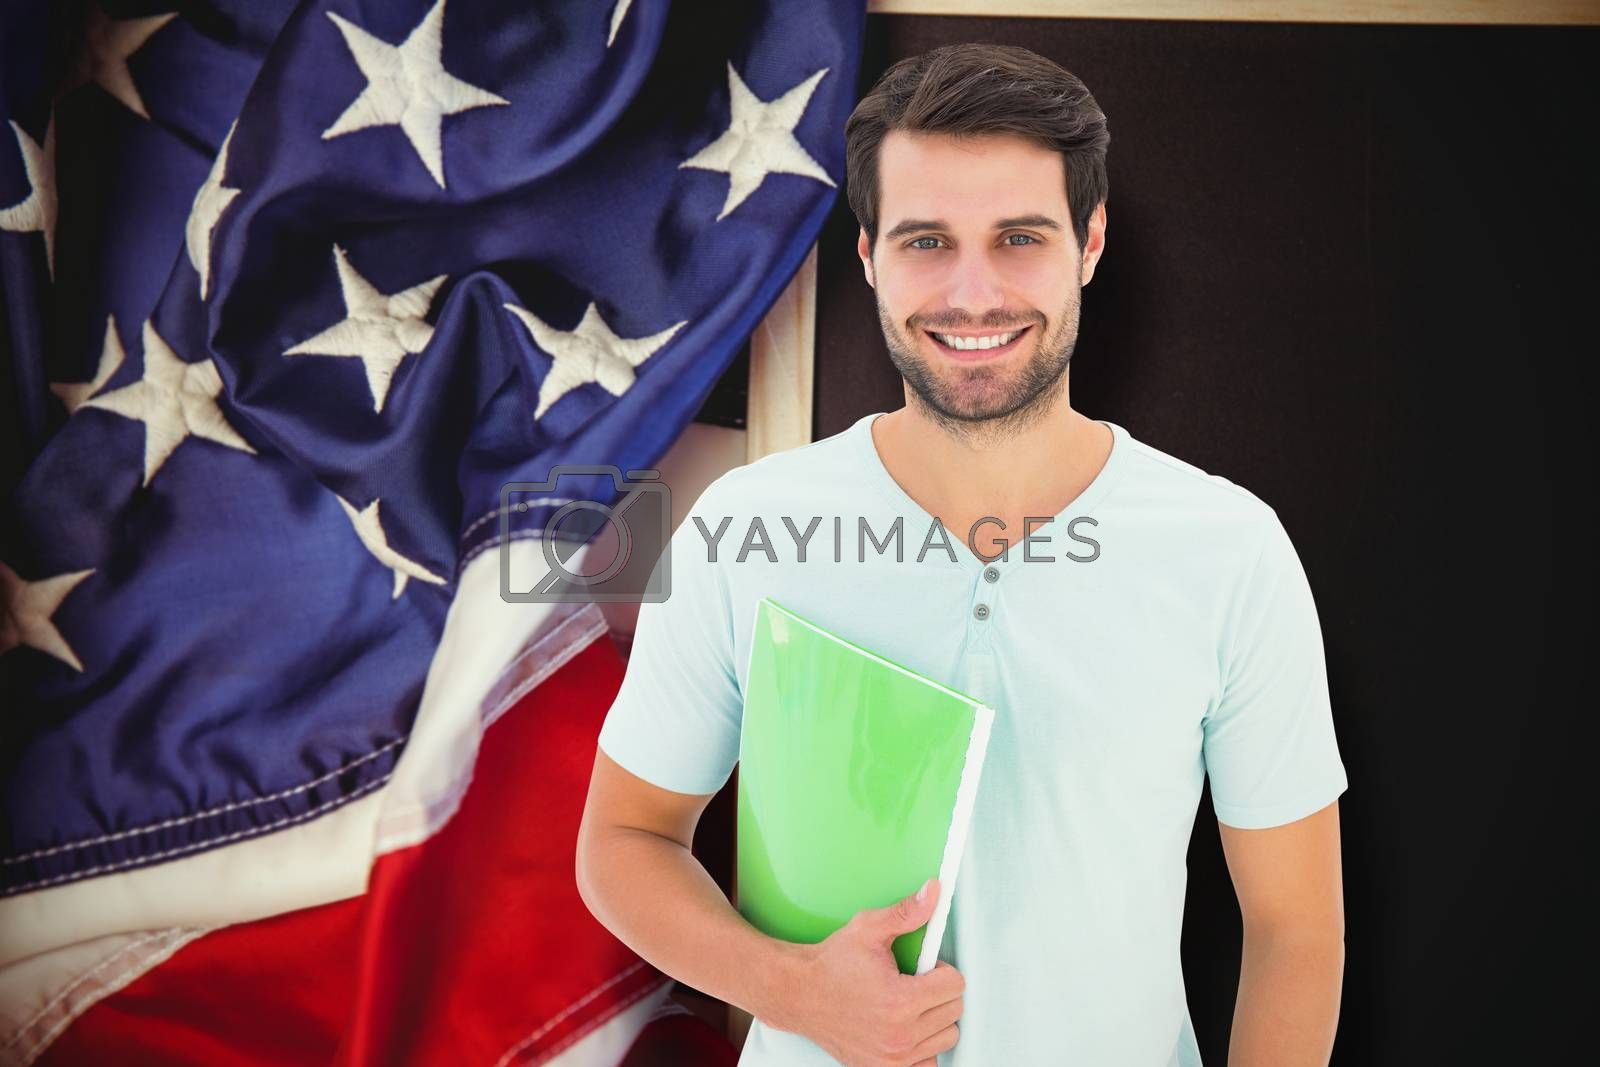 Student holding notepad against american flag on chalkboard